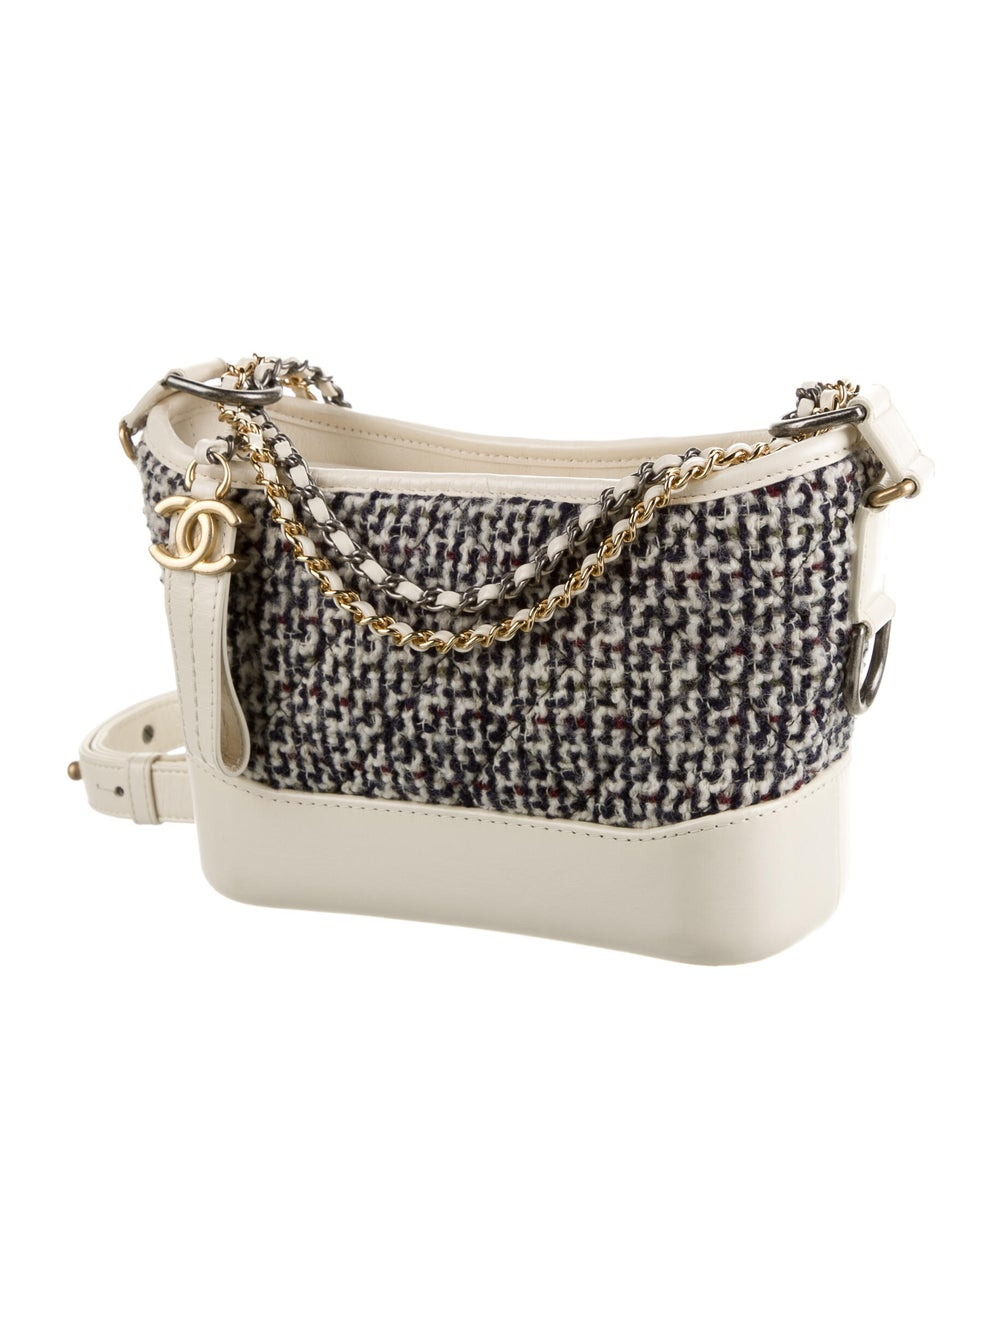 Chanel Tweed Small Gabrielle Bag Blue - image 3